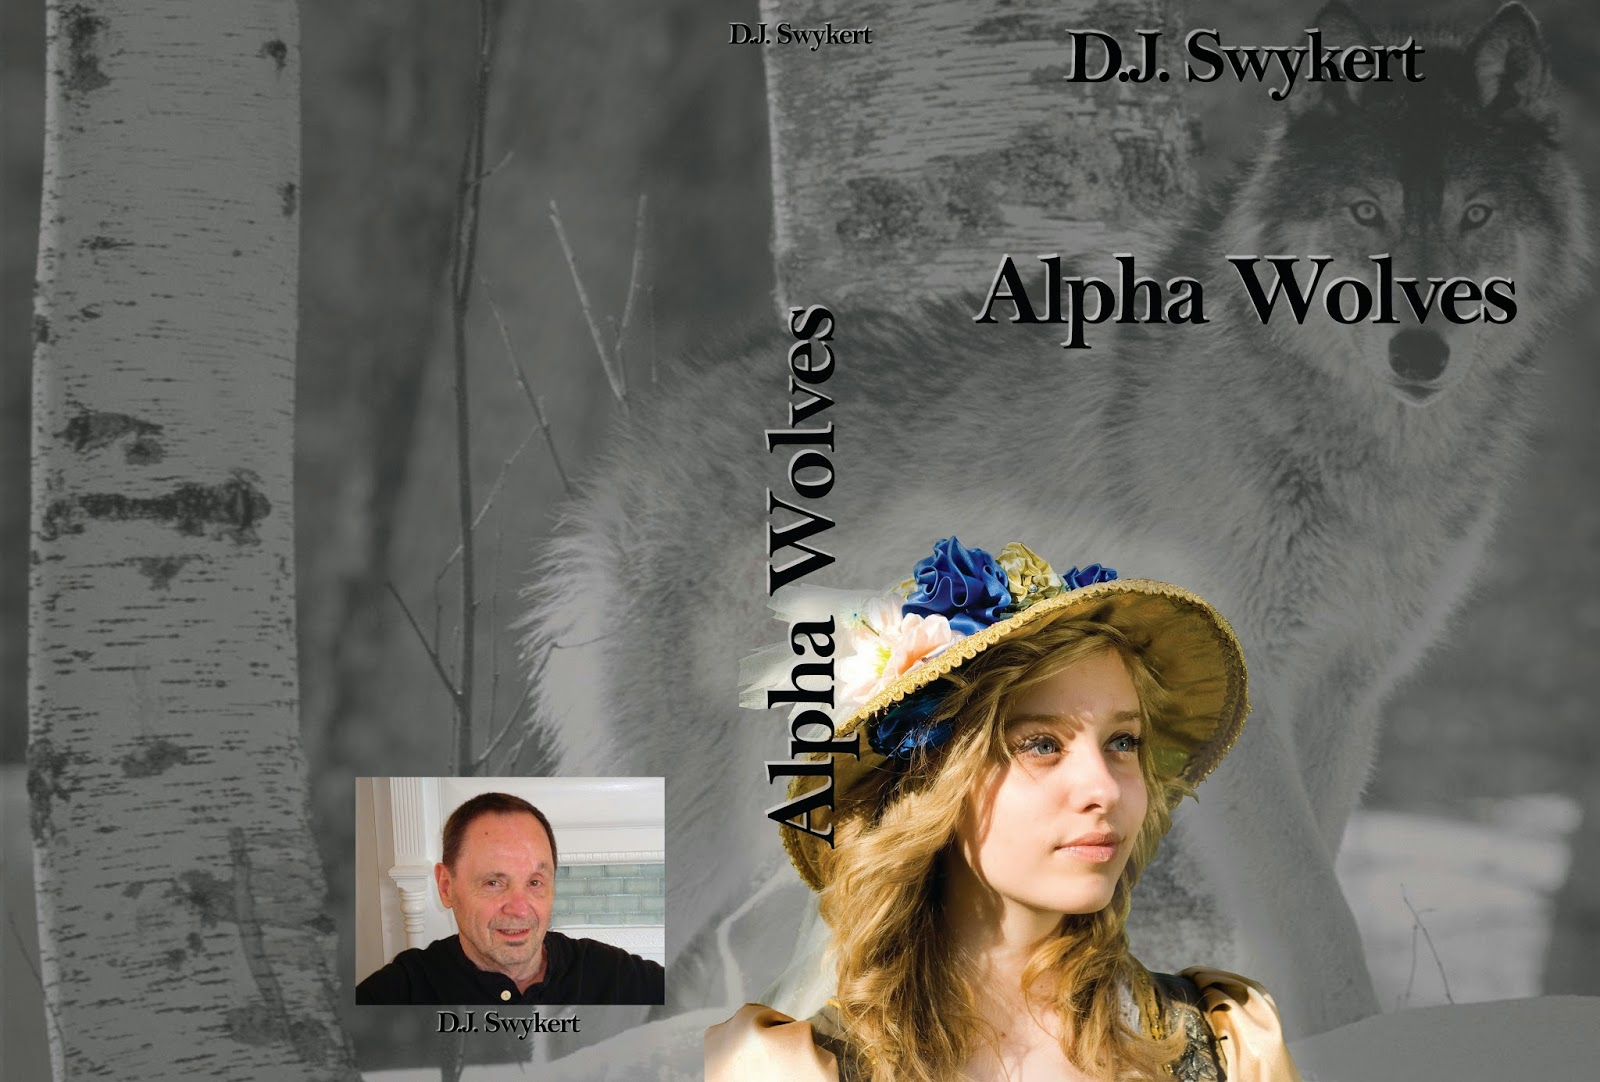 http://www.amazon.com/Alpha-Wolves-DJ-Swykert-ebook/dp/B00HFG9FWG/ref=sr_1_1?ie=UTF8&qid=1395777128&sr=8-1&keywords=alpha+wolves+dj+swykert